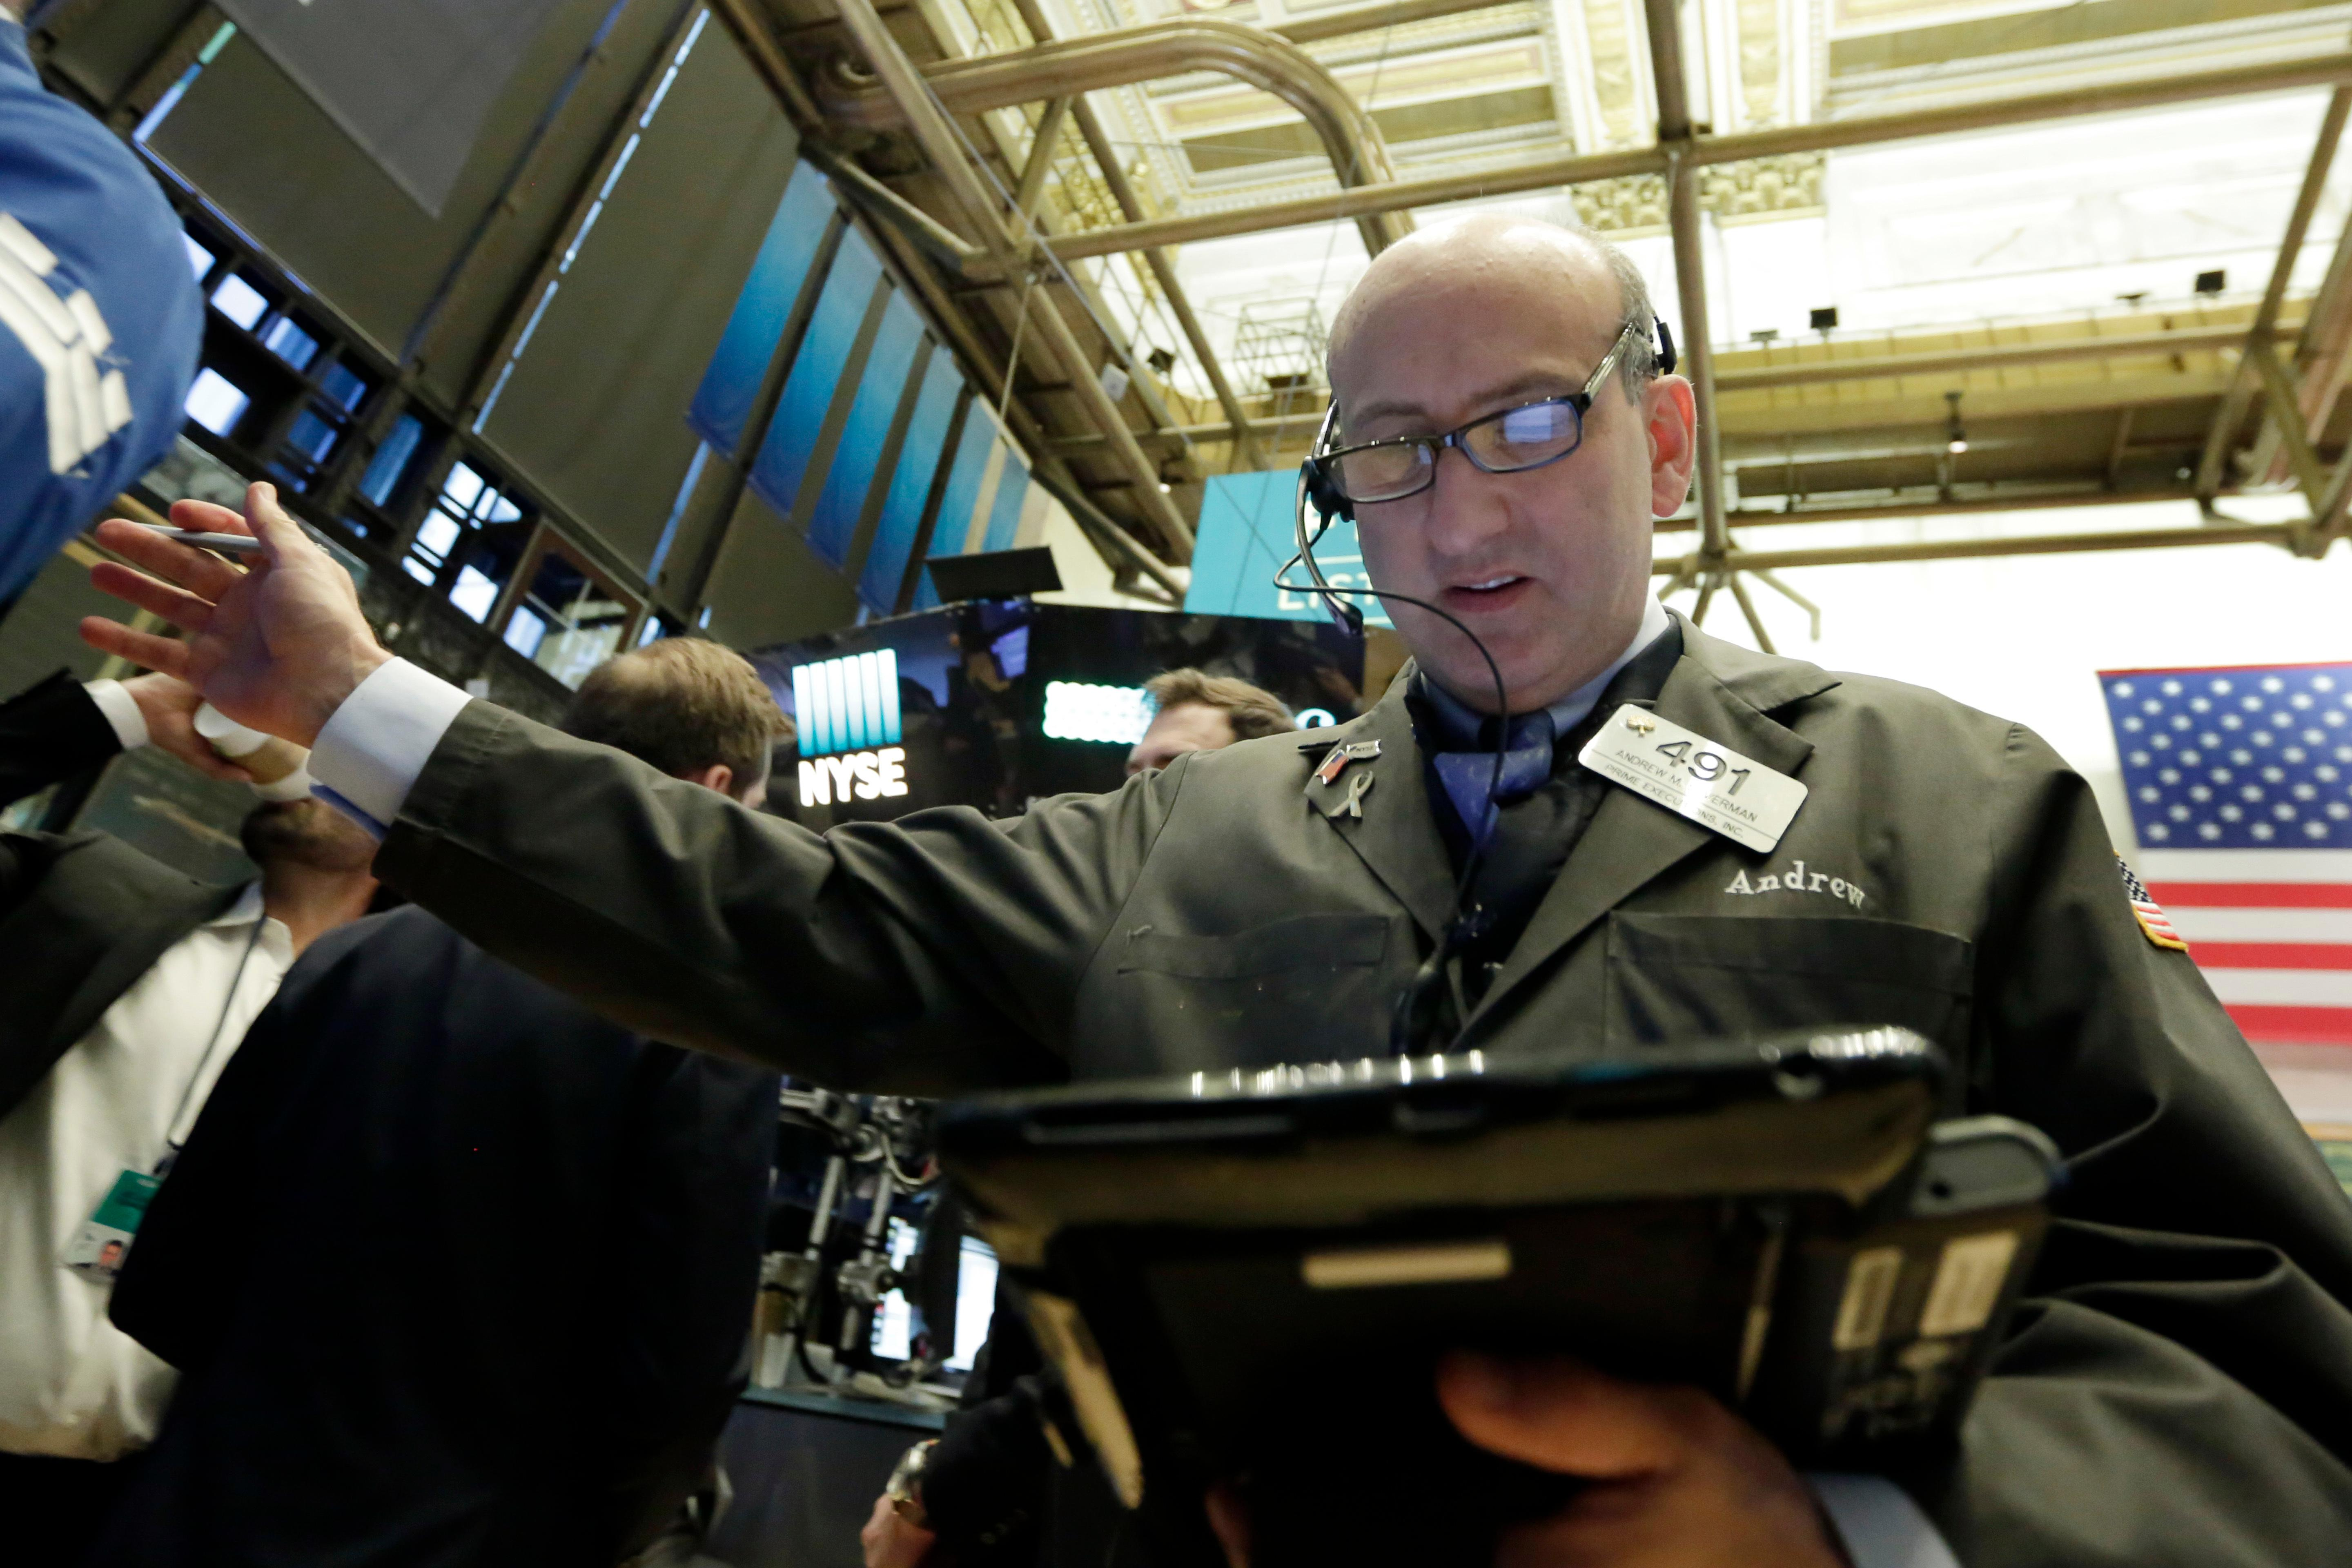 Trader Andrew Silverman works on the floor of the New York Stock Exchange, Monday, Feb. 5, 2018. Stock markets around the world took another pummeling Monday as investors continued to fret over rising U.S. bond yields. (AP Photo/Richard Drew)